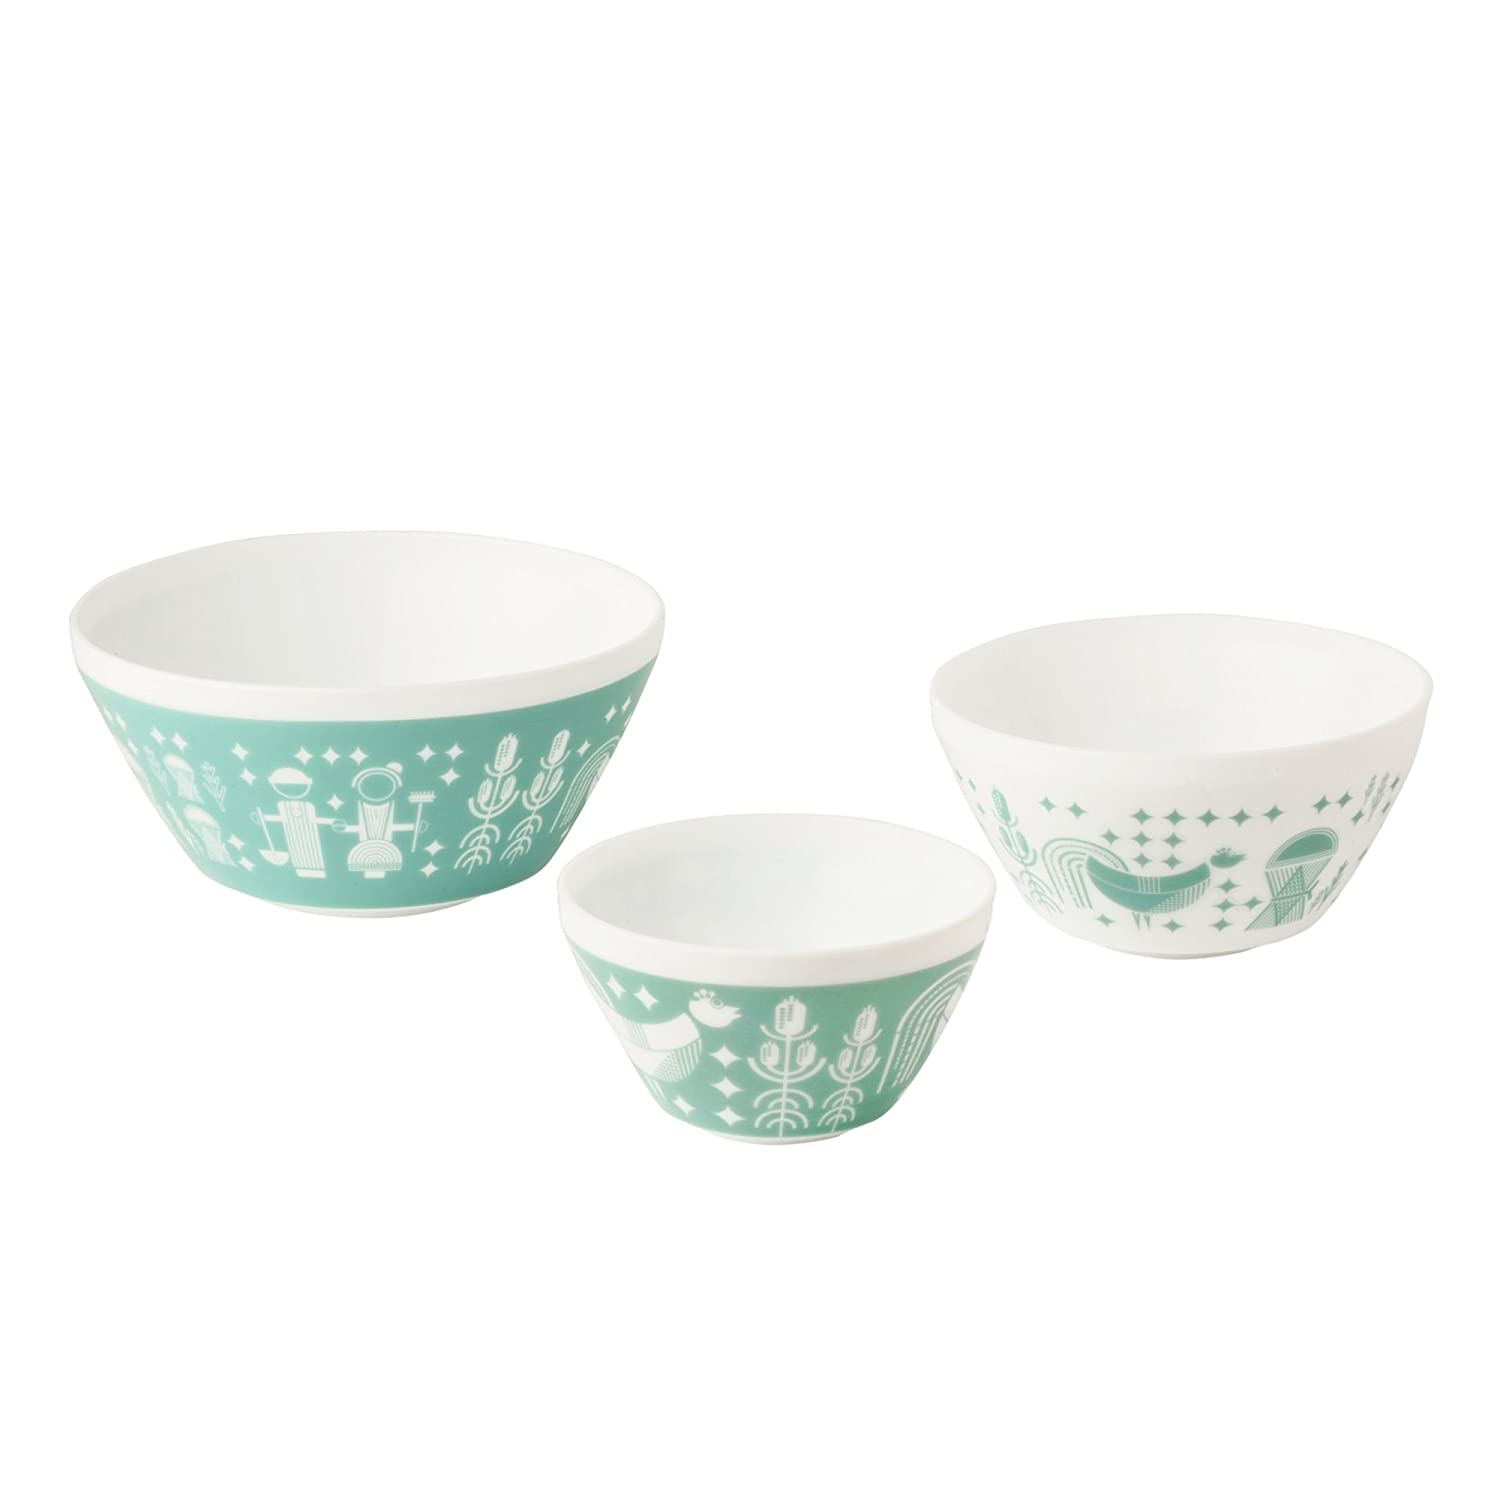 Pyrex 1125473 Vintage Charm Memory Lane 3 Piece Mixing Bowl Set, Multicolor